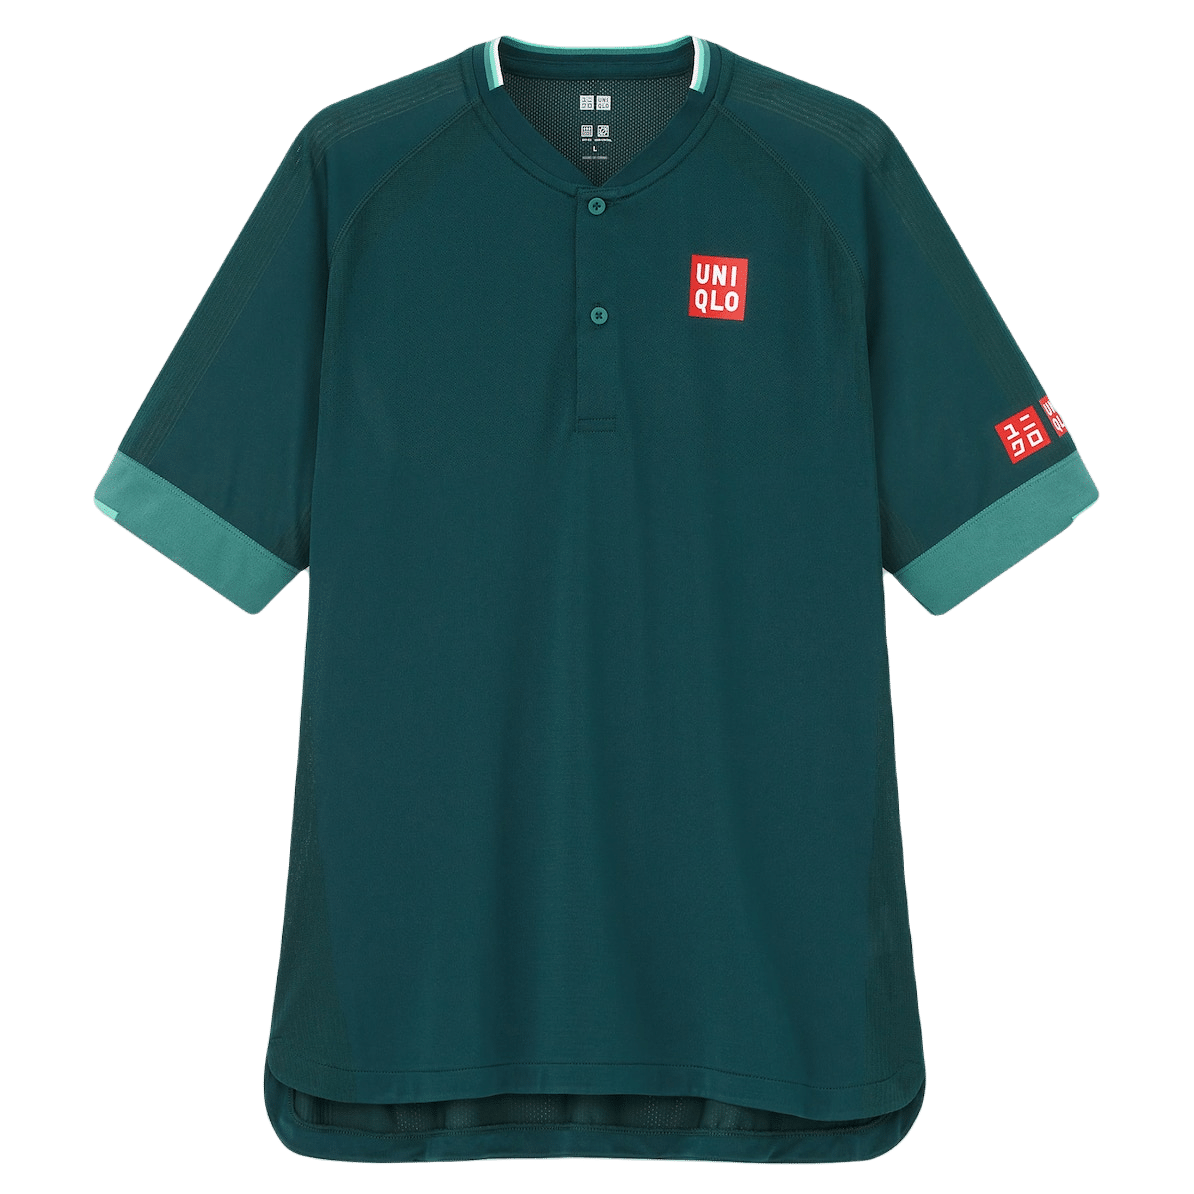 federer doha 2021 outfit